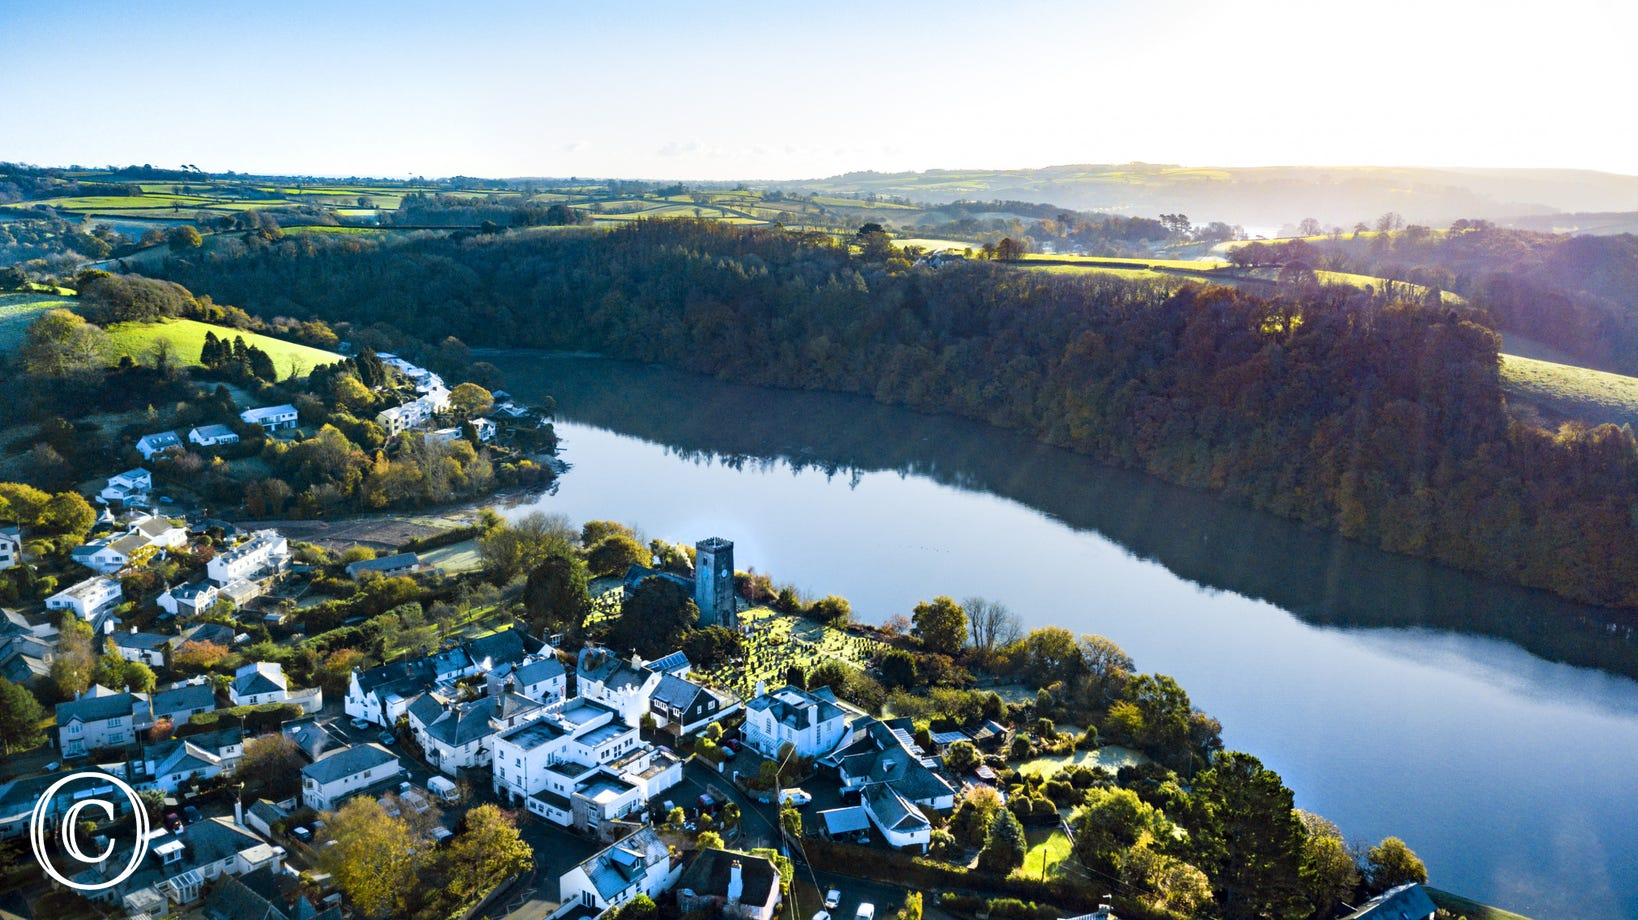 aerial shot over Stoke Gabriel village and the river Dart